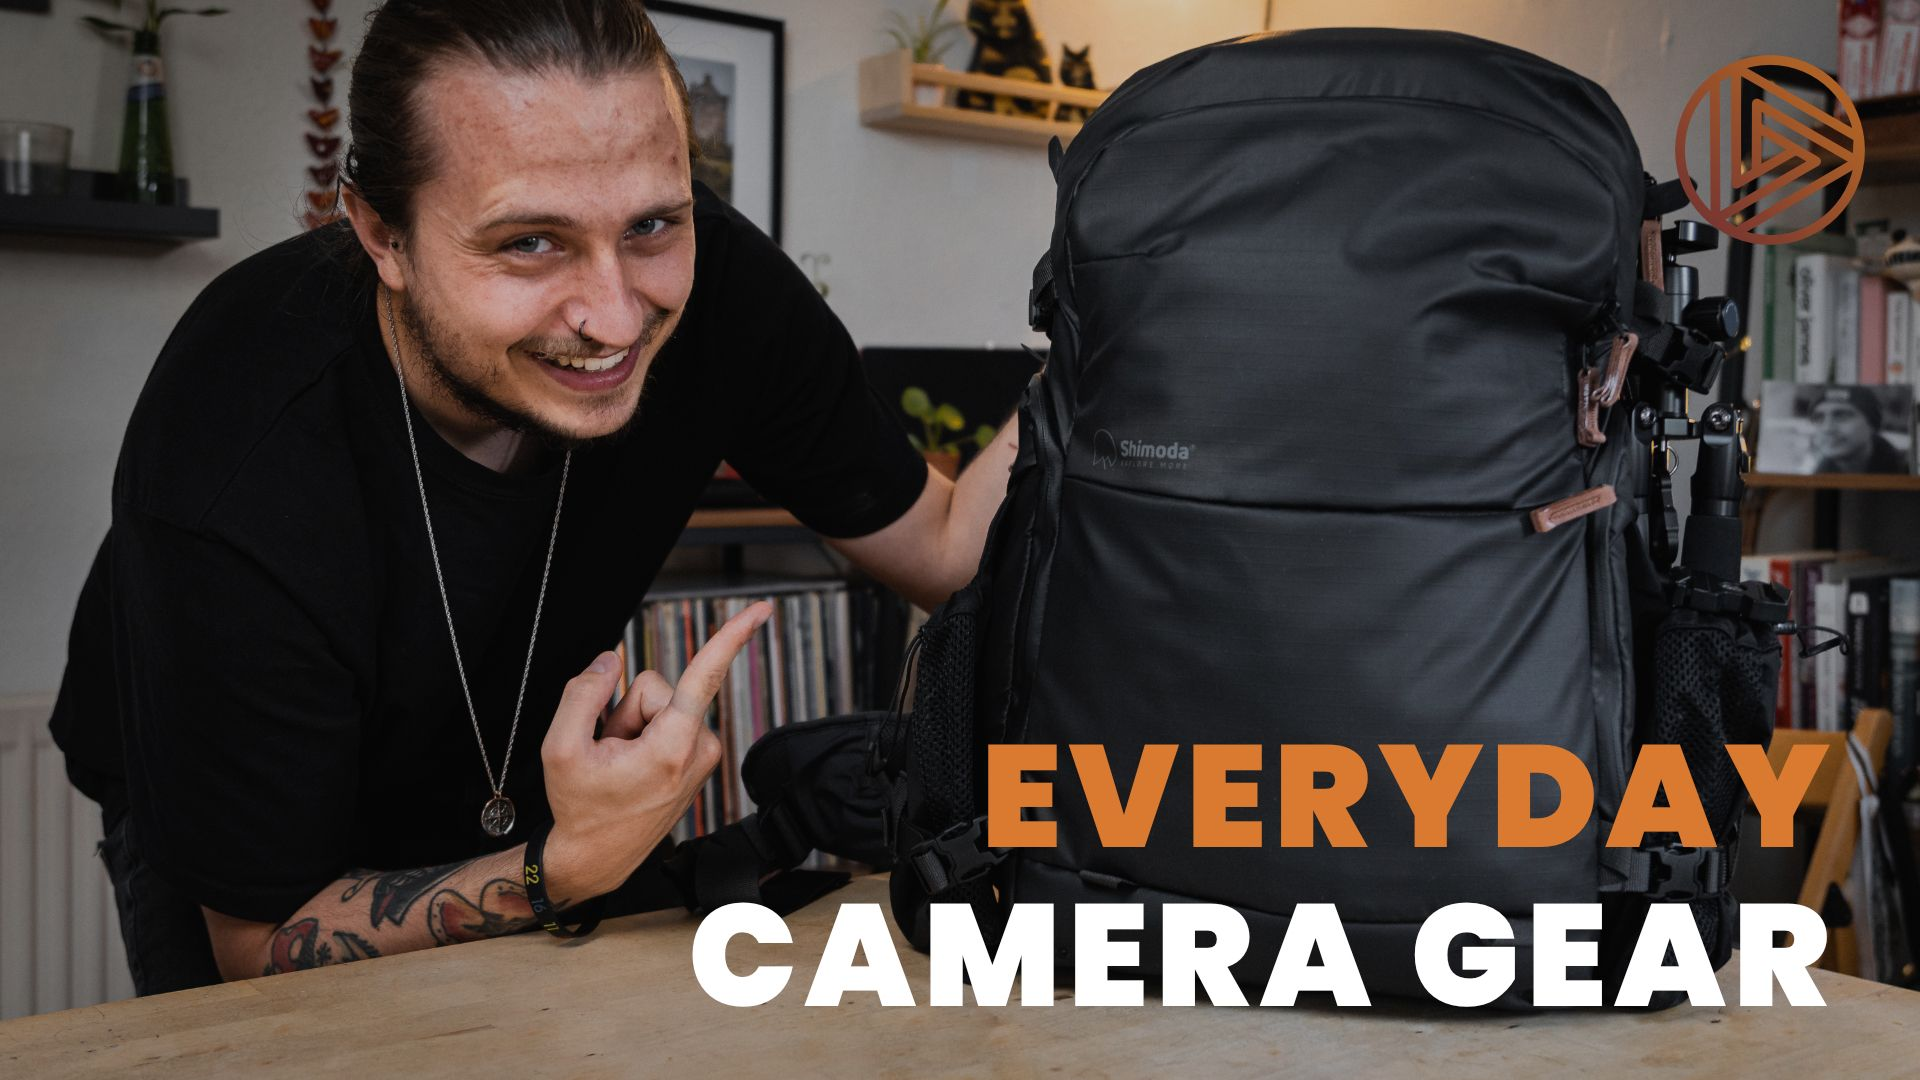 My Essential Camera Gear | What's In My Camera Bag 2021 Edition